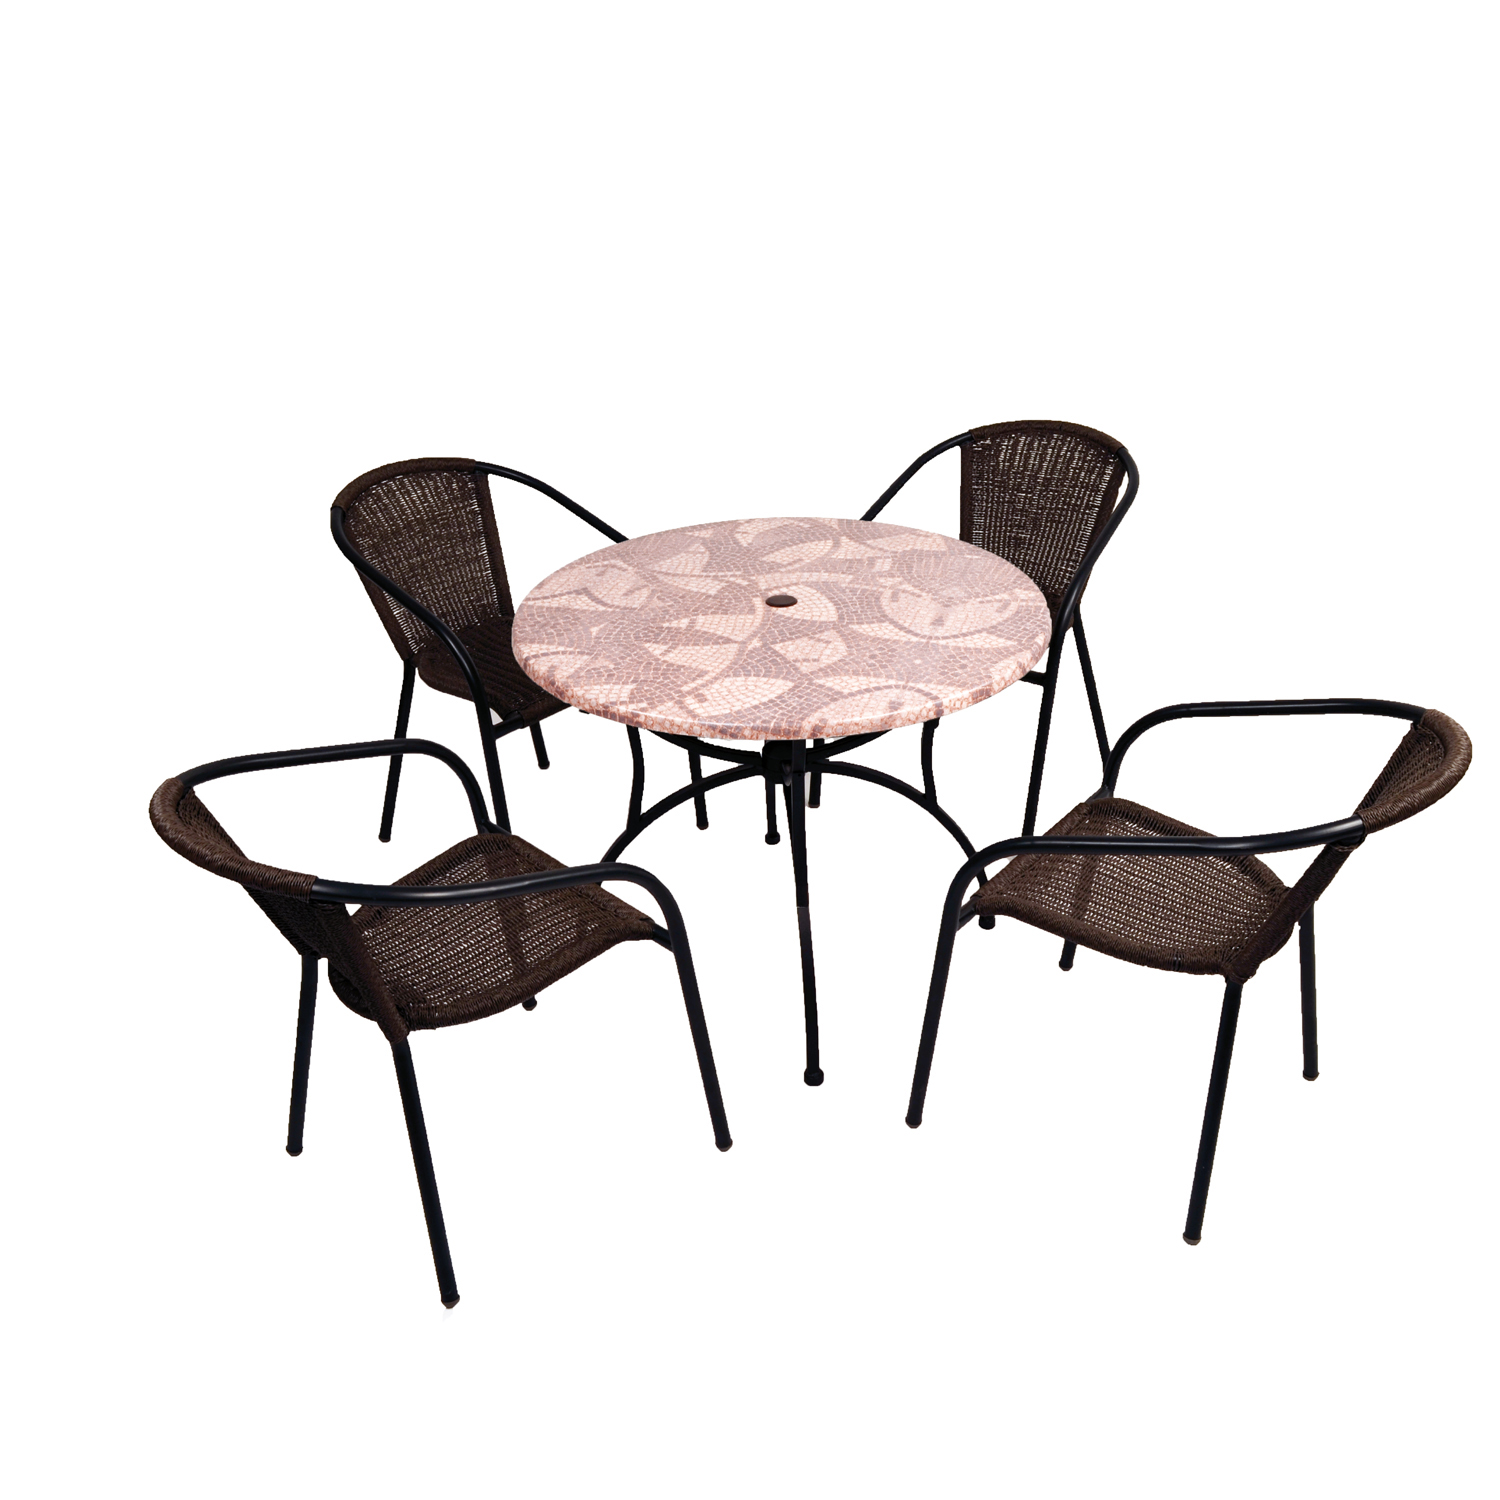 ST-557 Romano 90 Patio table with San Luca chairs